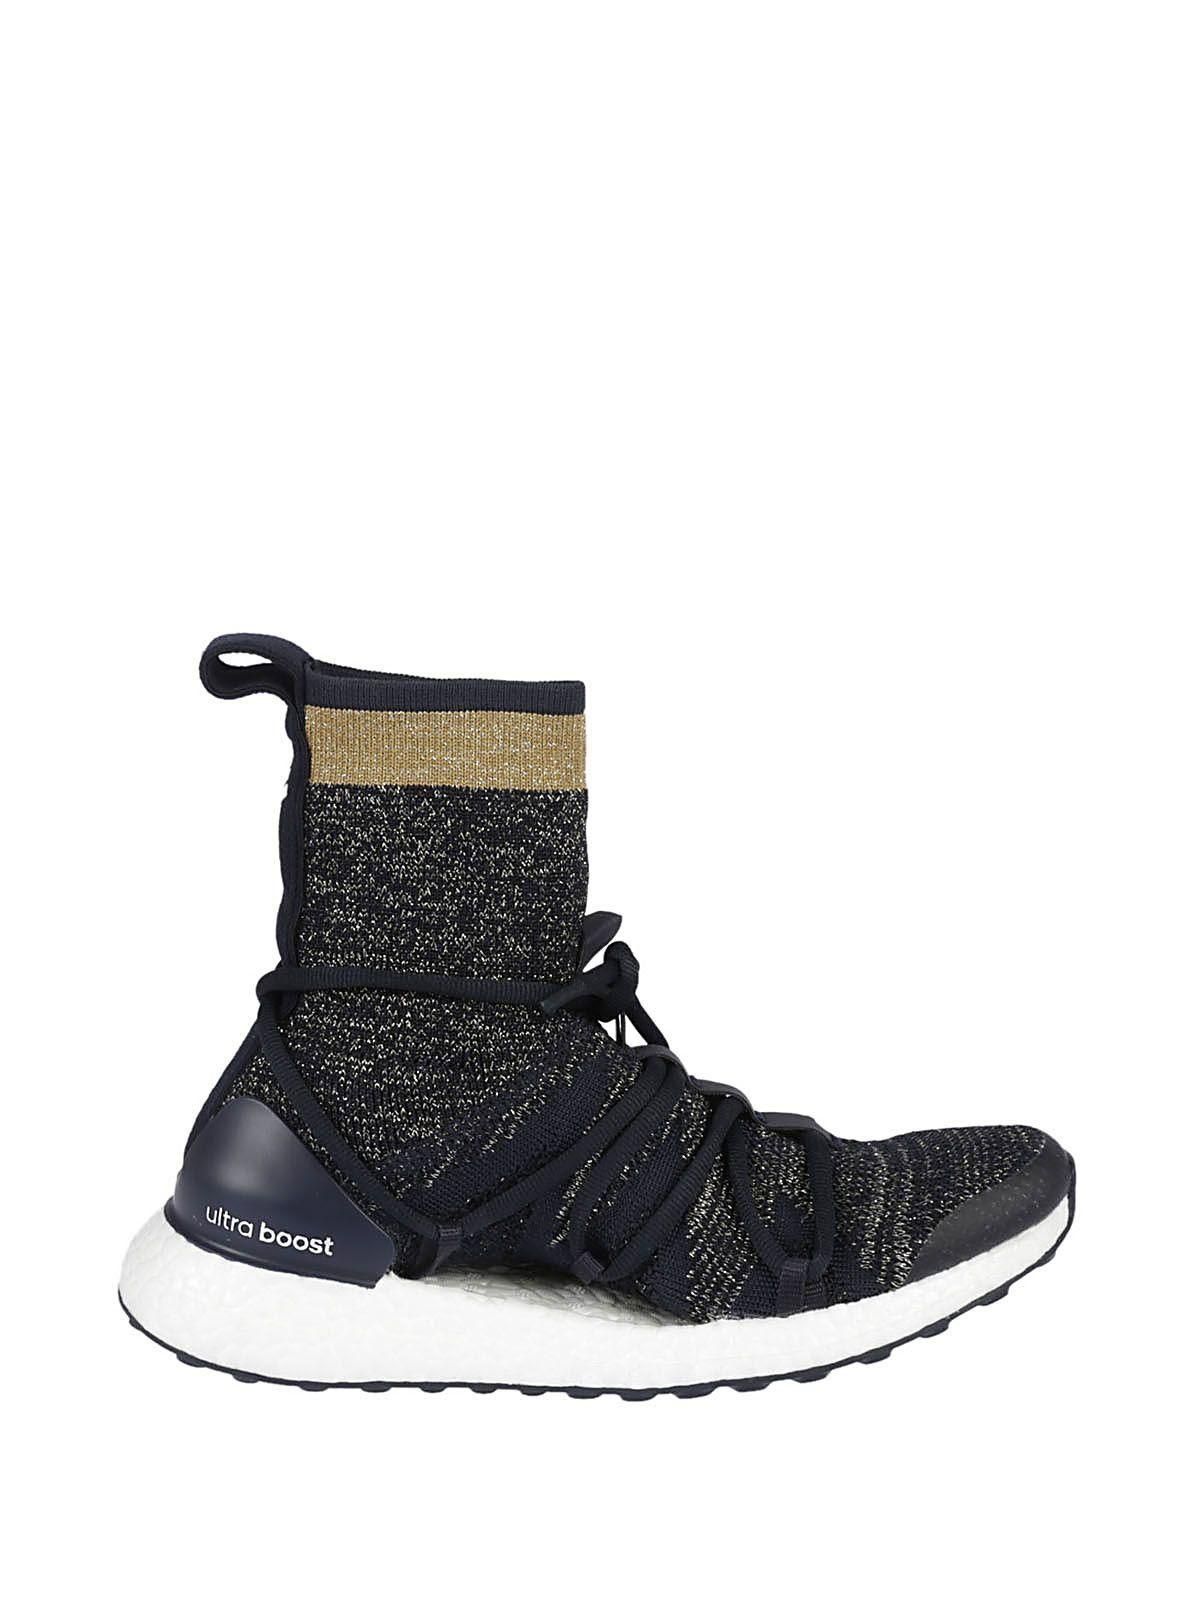 sneakers for cheap 0a3a1 4ce7d  Italist -  Adidas by Stella McCartney Adidas Ultra Boost X Mid Hi-top